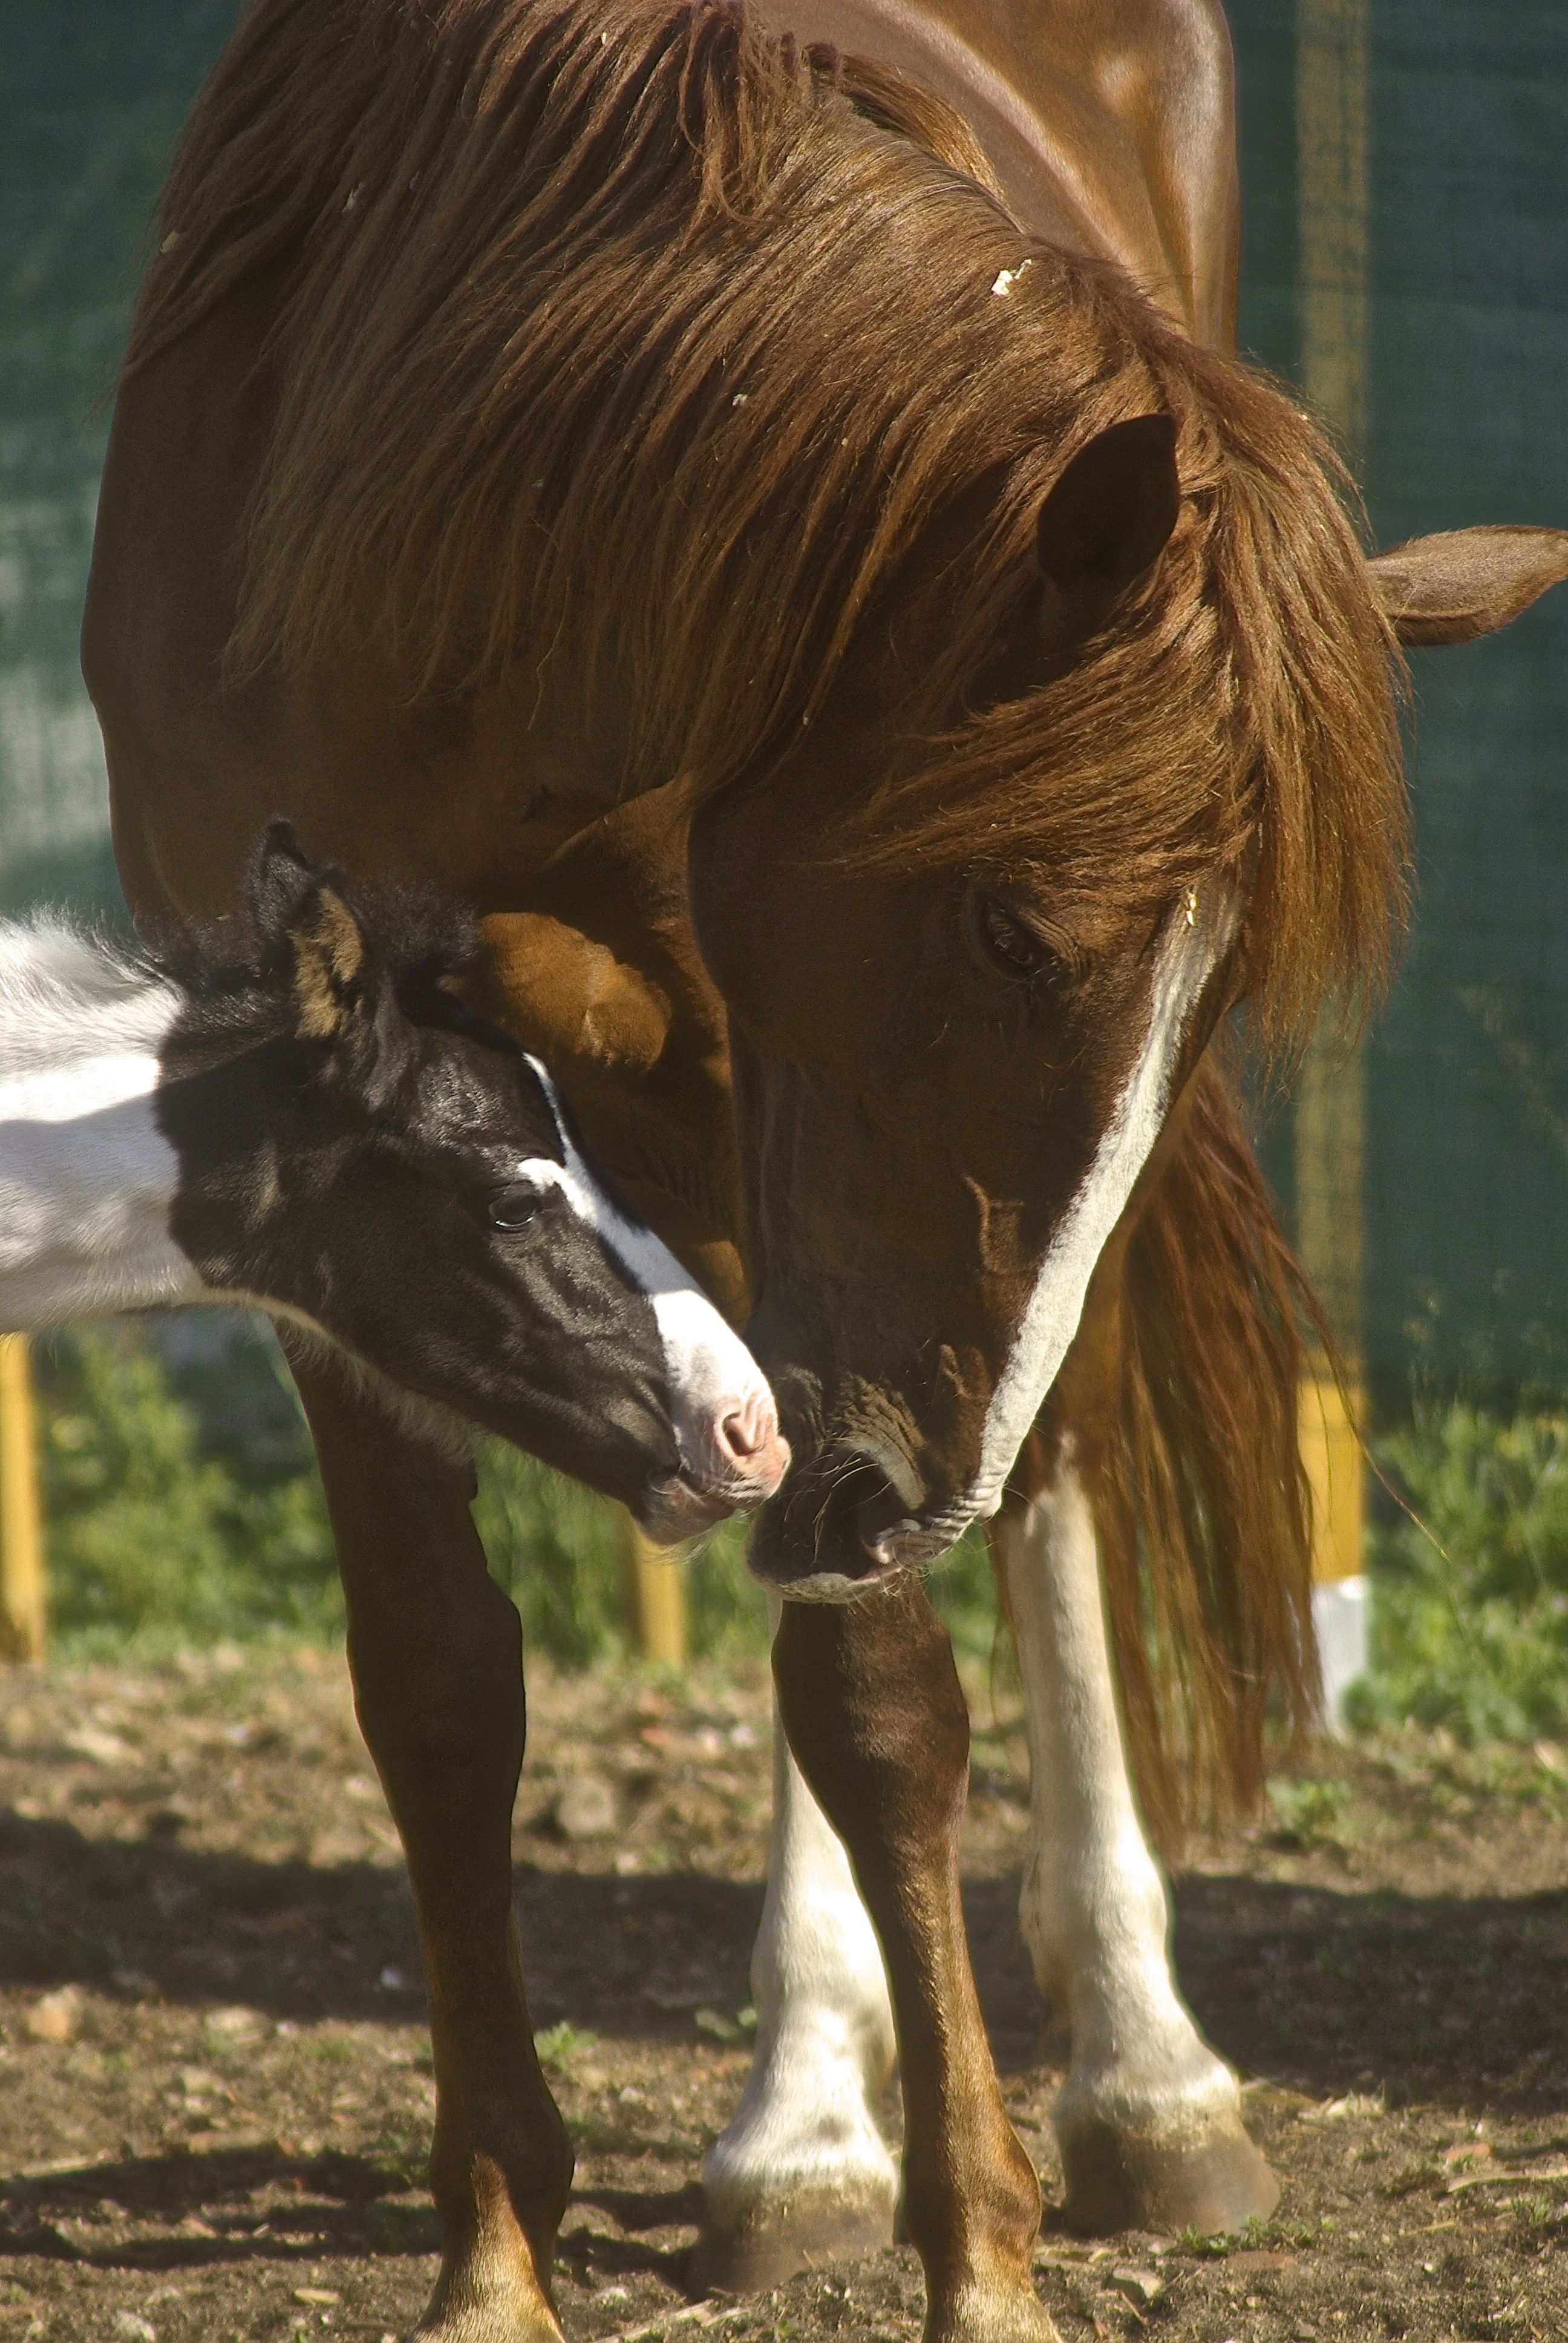 My Horses - the little One just has 1 day in this photo ( born on June 14, 2014 at 11:30 GMT )